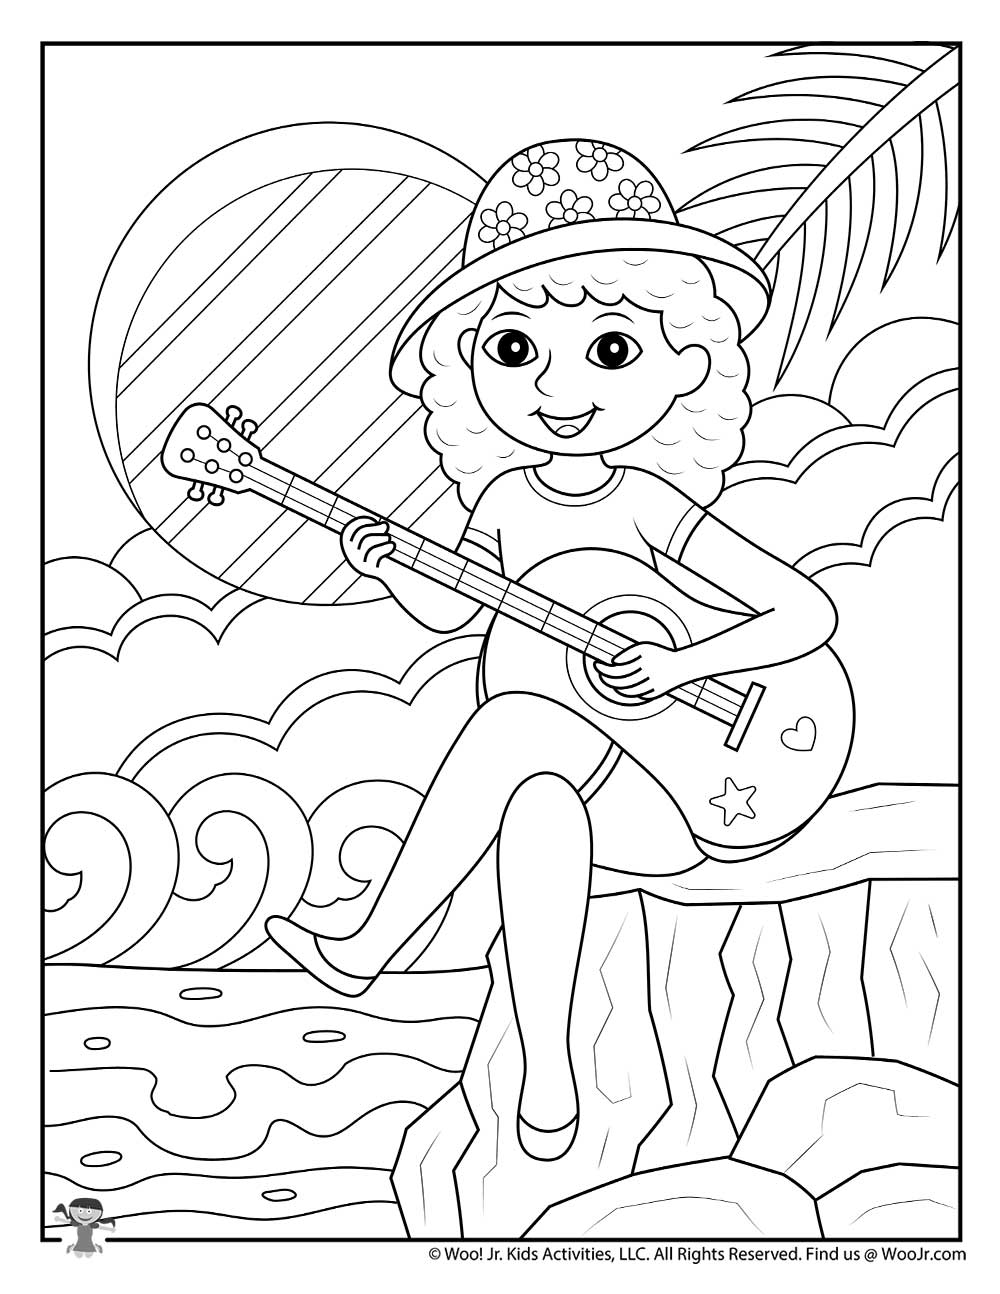 Quote Coloring Pages For Adults To Print | Letras para carteles ... | 1294x1000